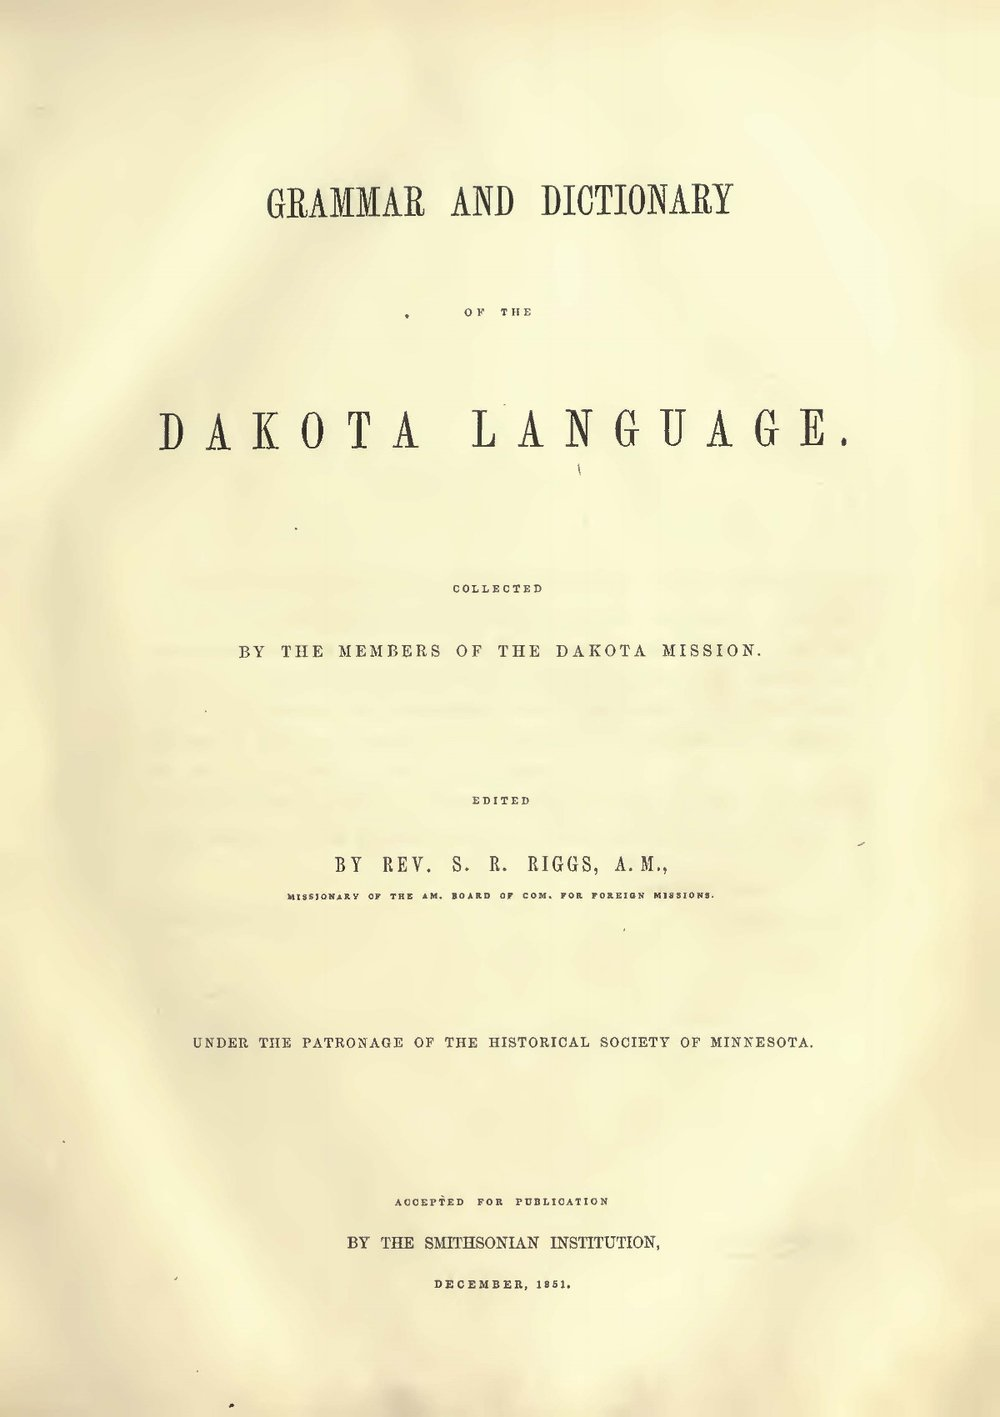 Riggs, Stephen Return, Grammar and Dictionary of the Dakota Language Title Page.jpg